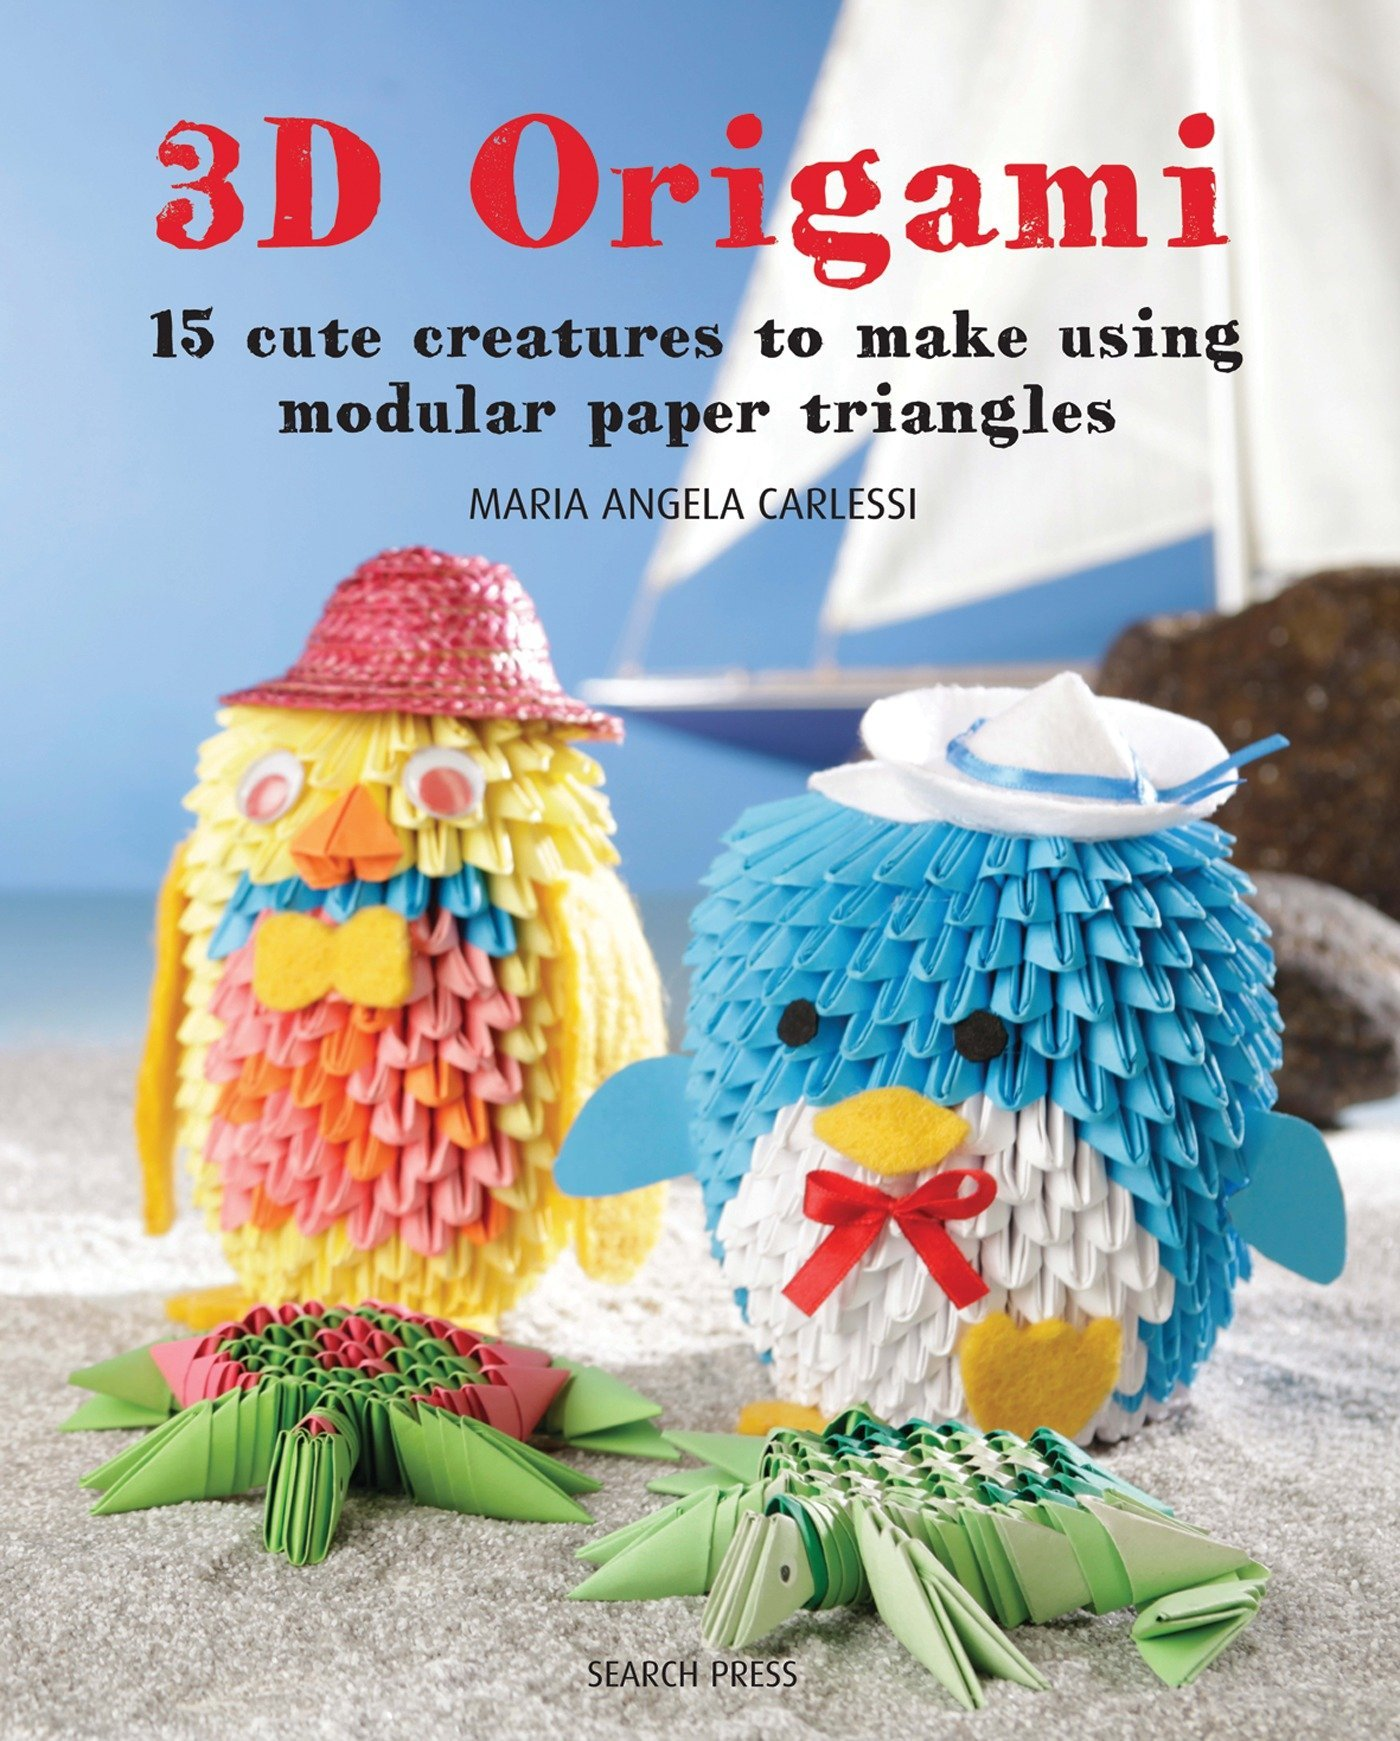 3d Origami 15 Cute Creatures To Make Using Modular Paper Triangles Diagrams Free Download Maria Angela Carlessi 9781782214090 Books